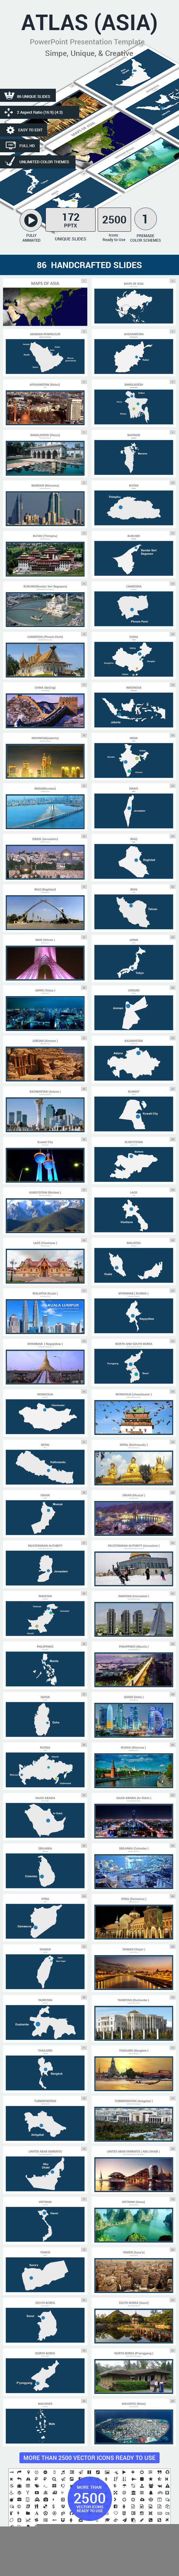 ATLAS (ASIA) PowerPoint Presentation Template - PowerPoint Templates Presentation Templates